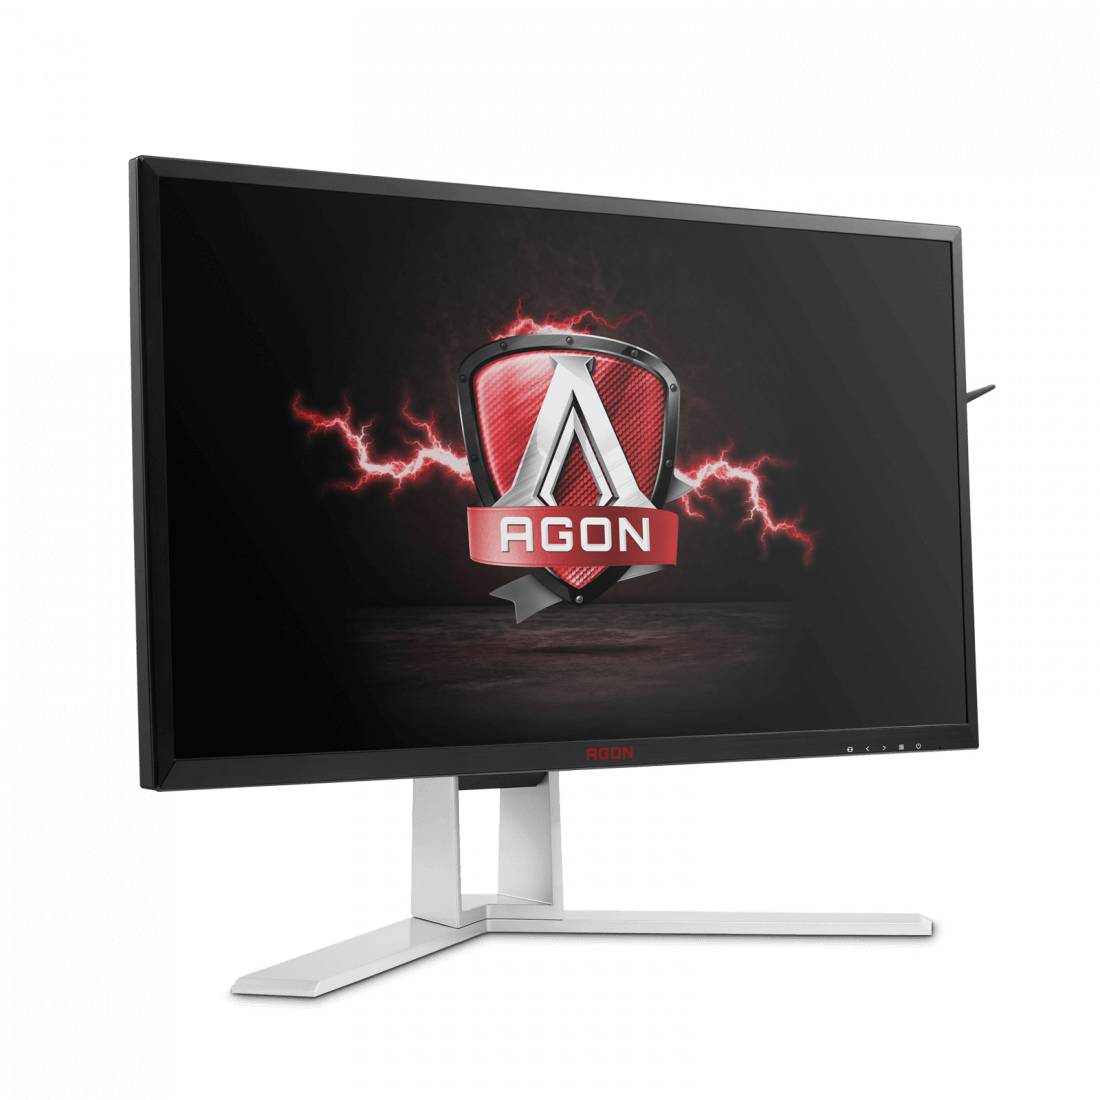 AOC's new G-Sync monitor offers both 1440p@144Hz and 1080p